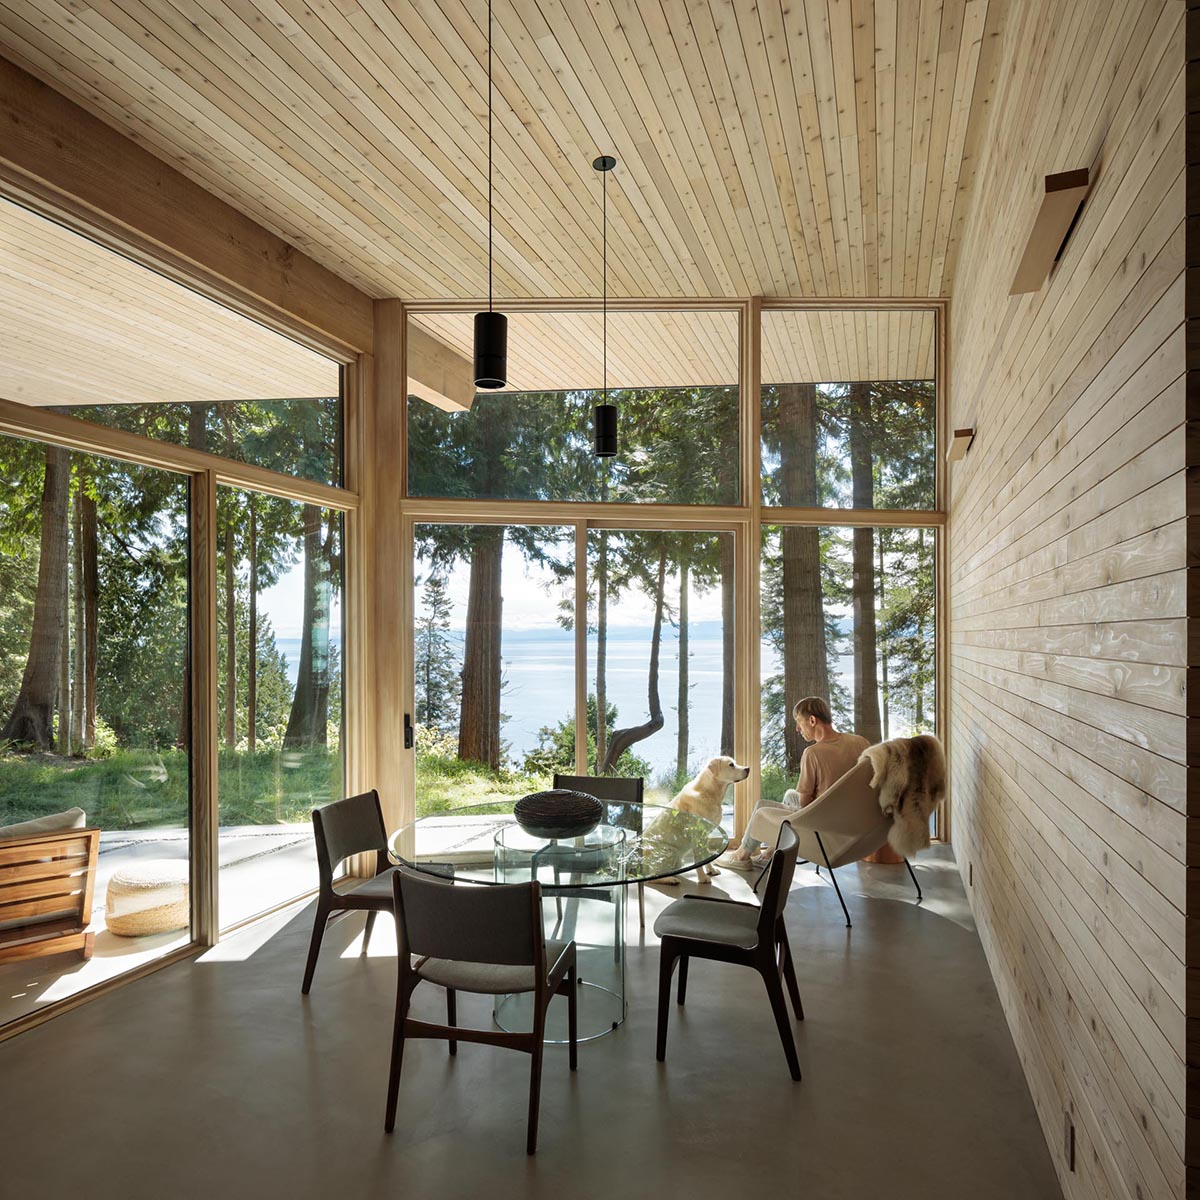 Adjacent to a patio with a fire bowl is the dining room, which has a wood lined wall, and a concrete floor.